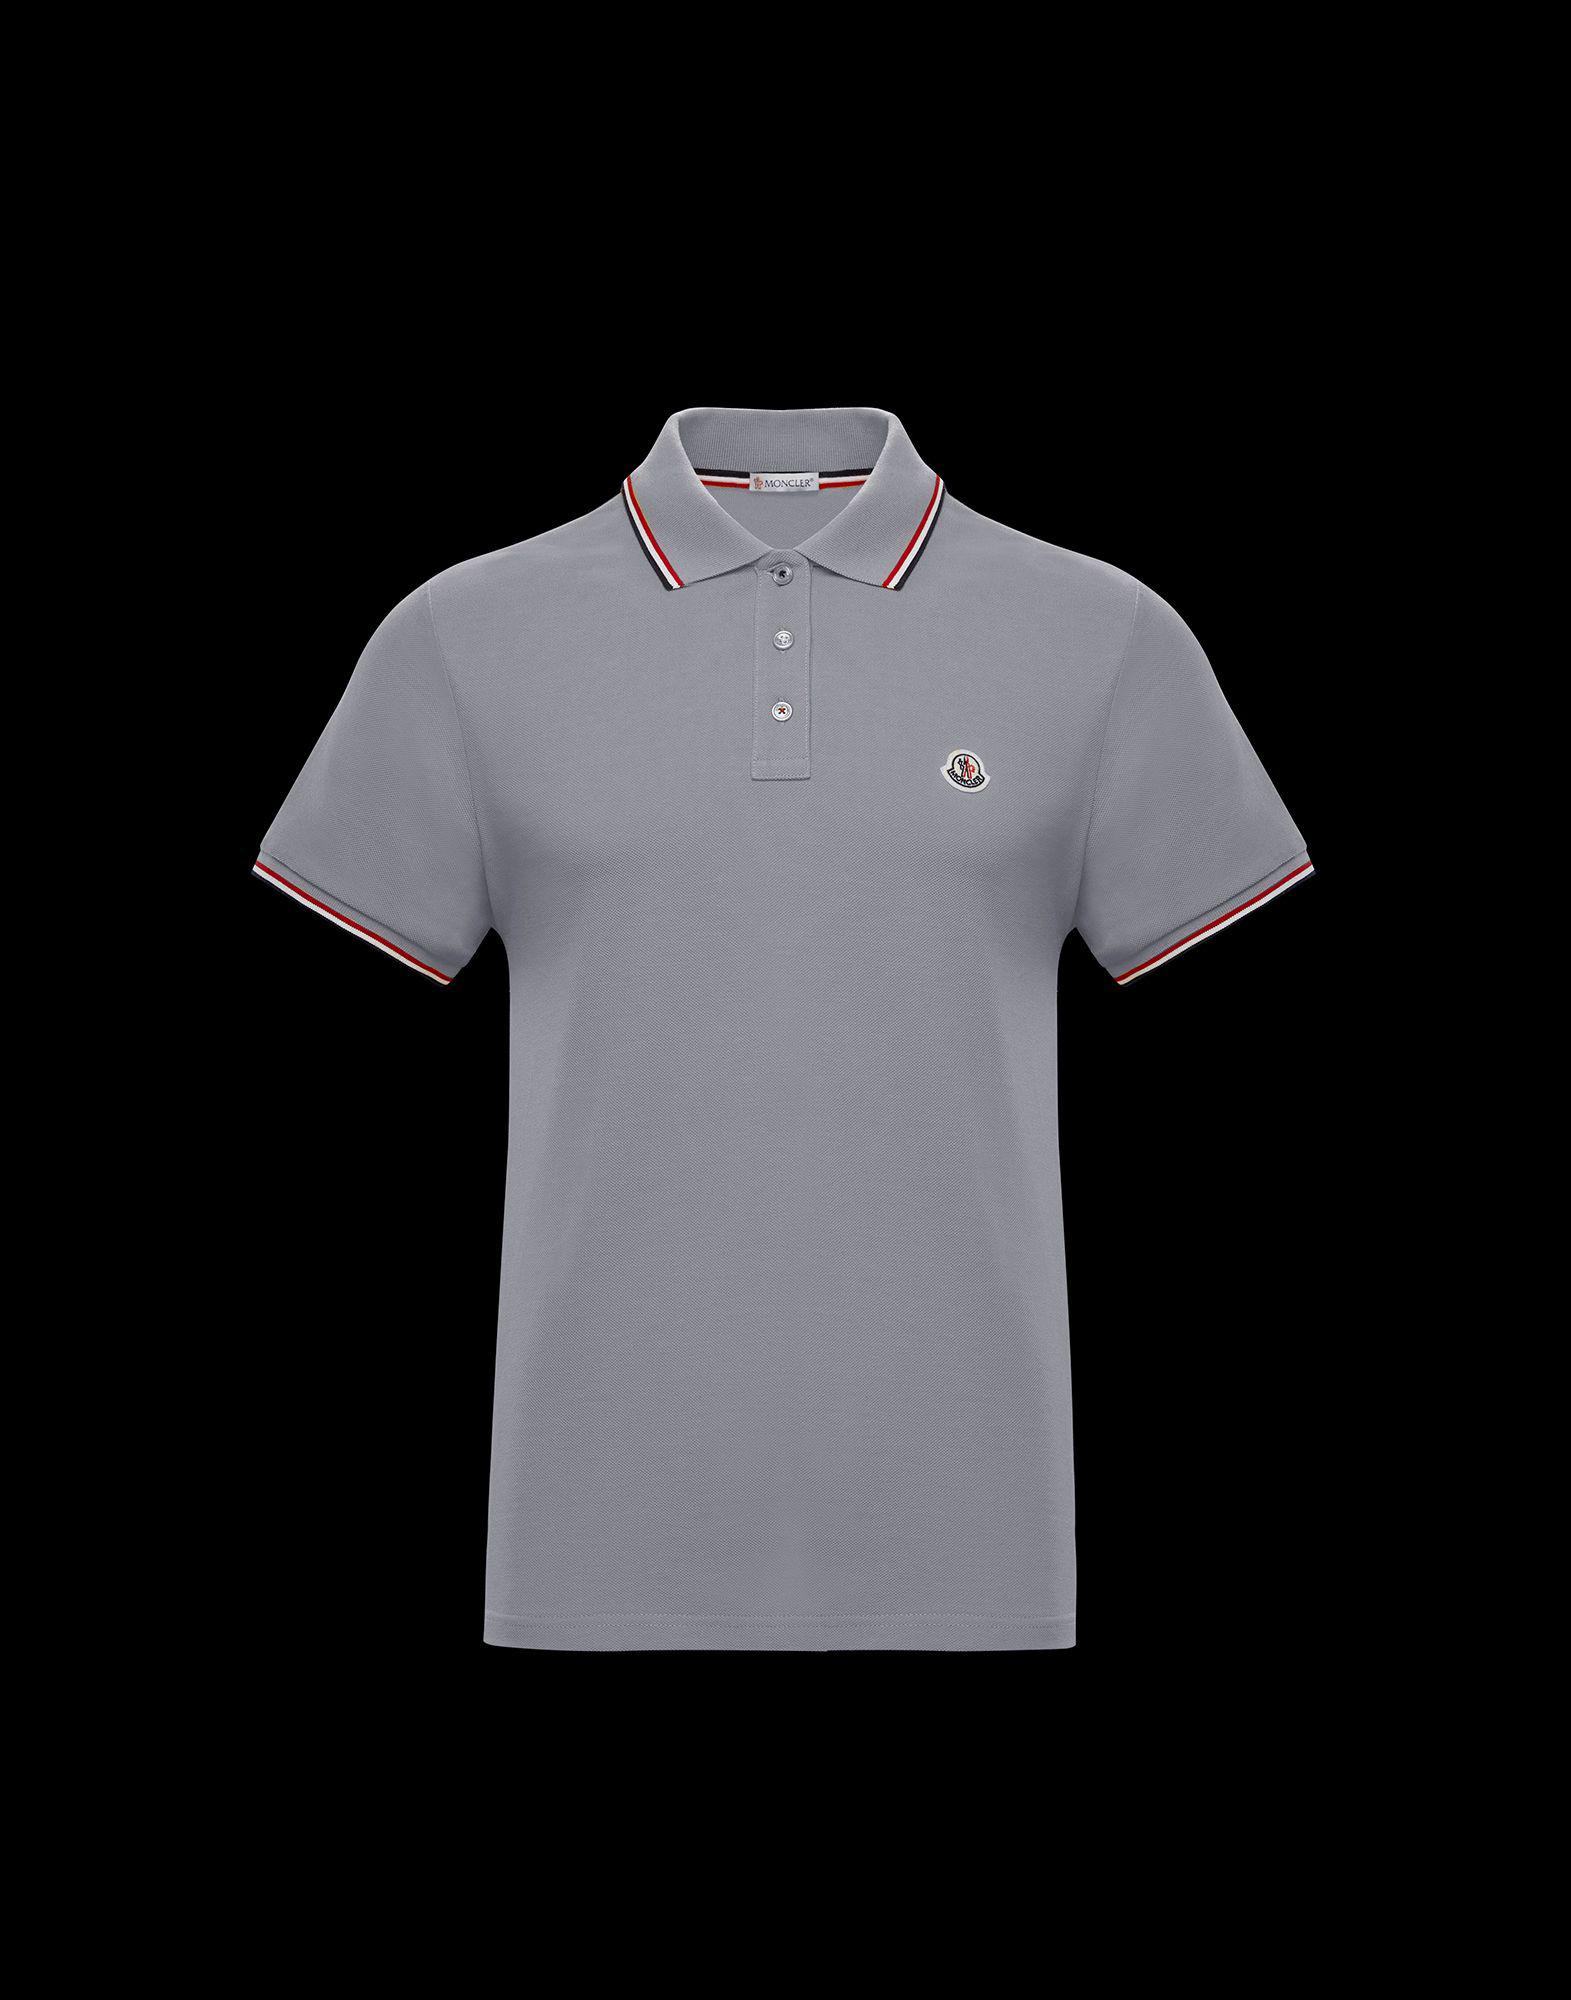 4334eda43 Lyst - Moncler Polo Shirt in Gray for Men